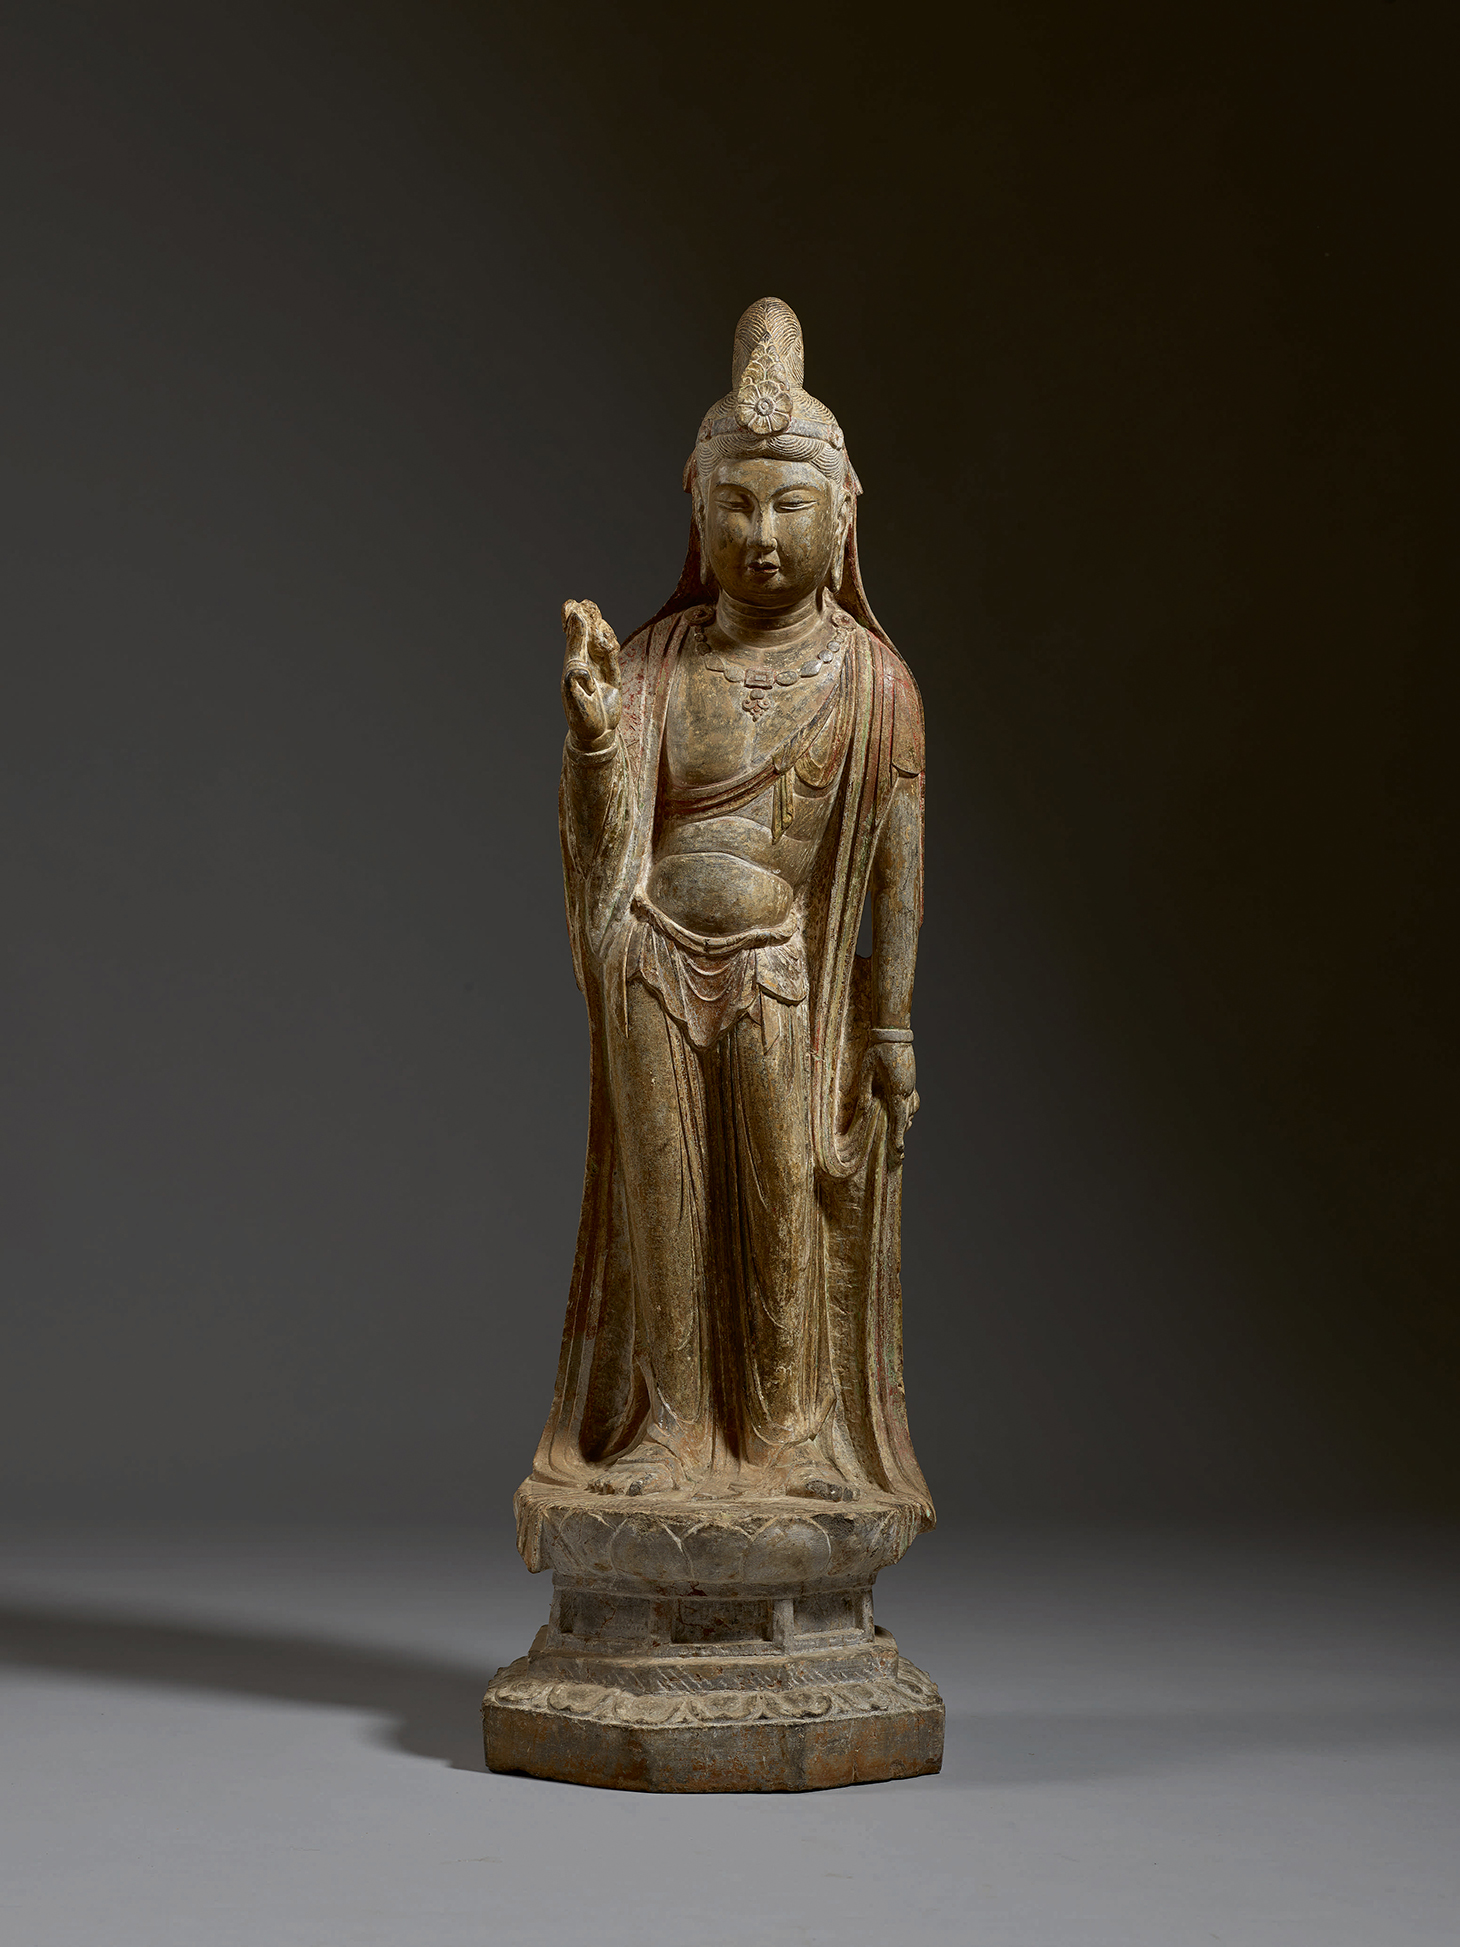 An Exceptional Large Limestone Figure of a Bodhisattva, Tang Dynasty, 39 1/2 inches (image courtesy Sotheby's)